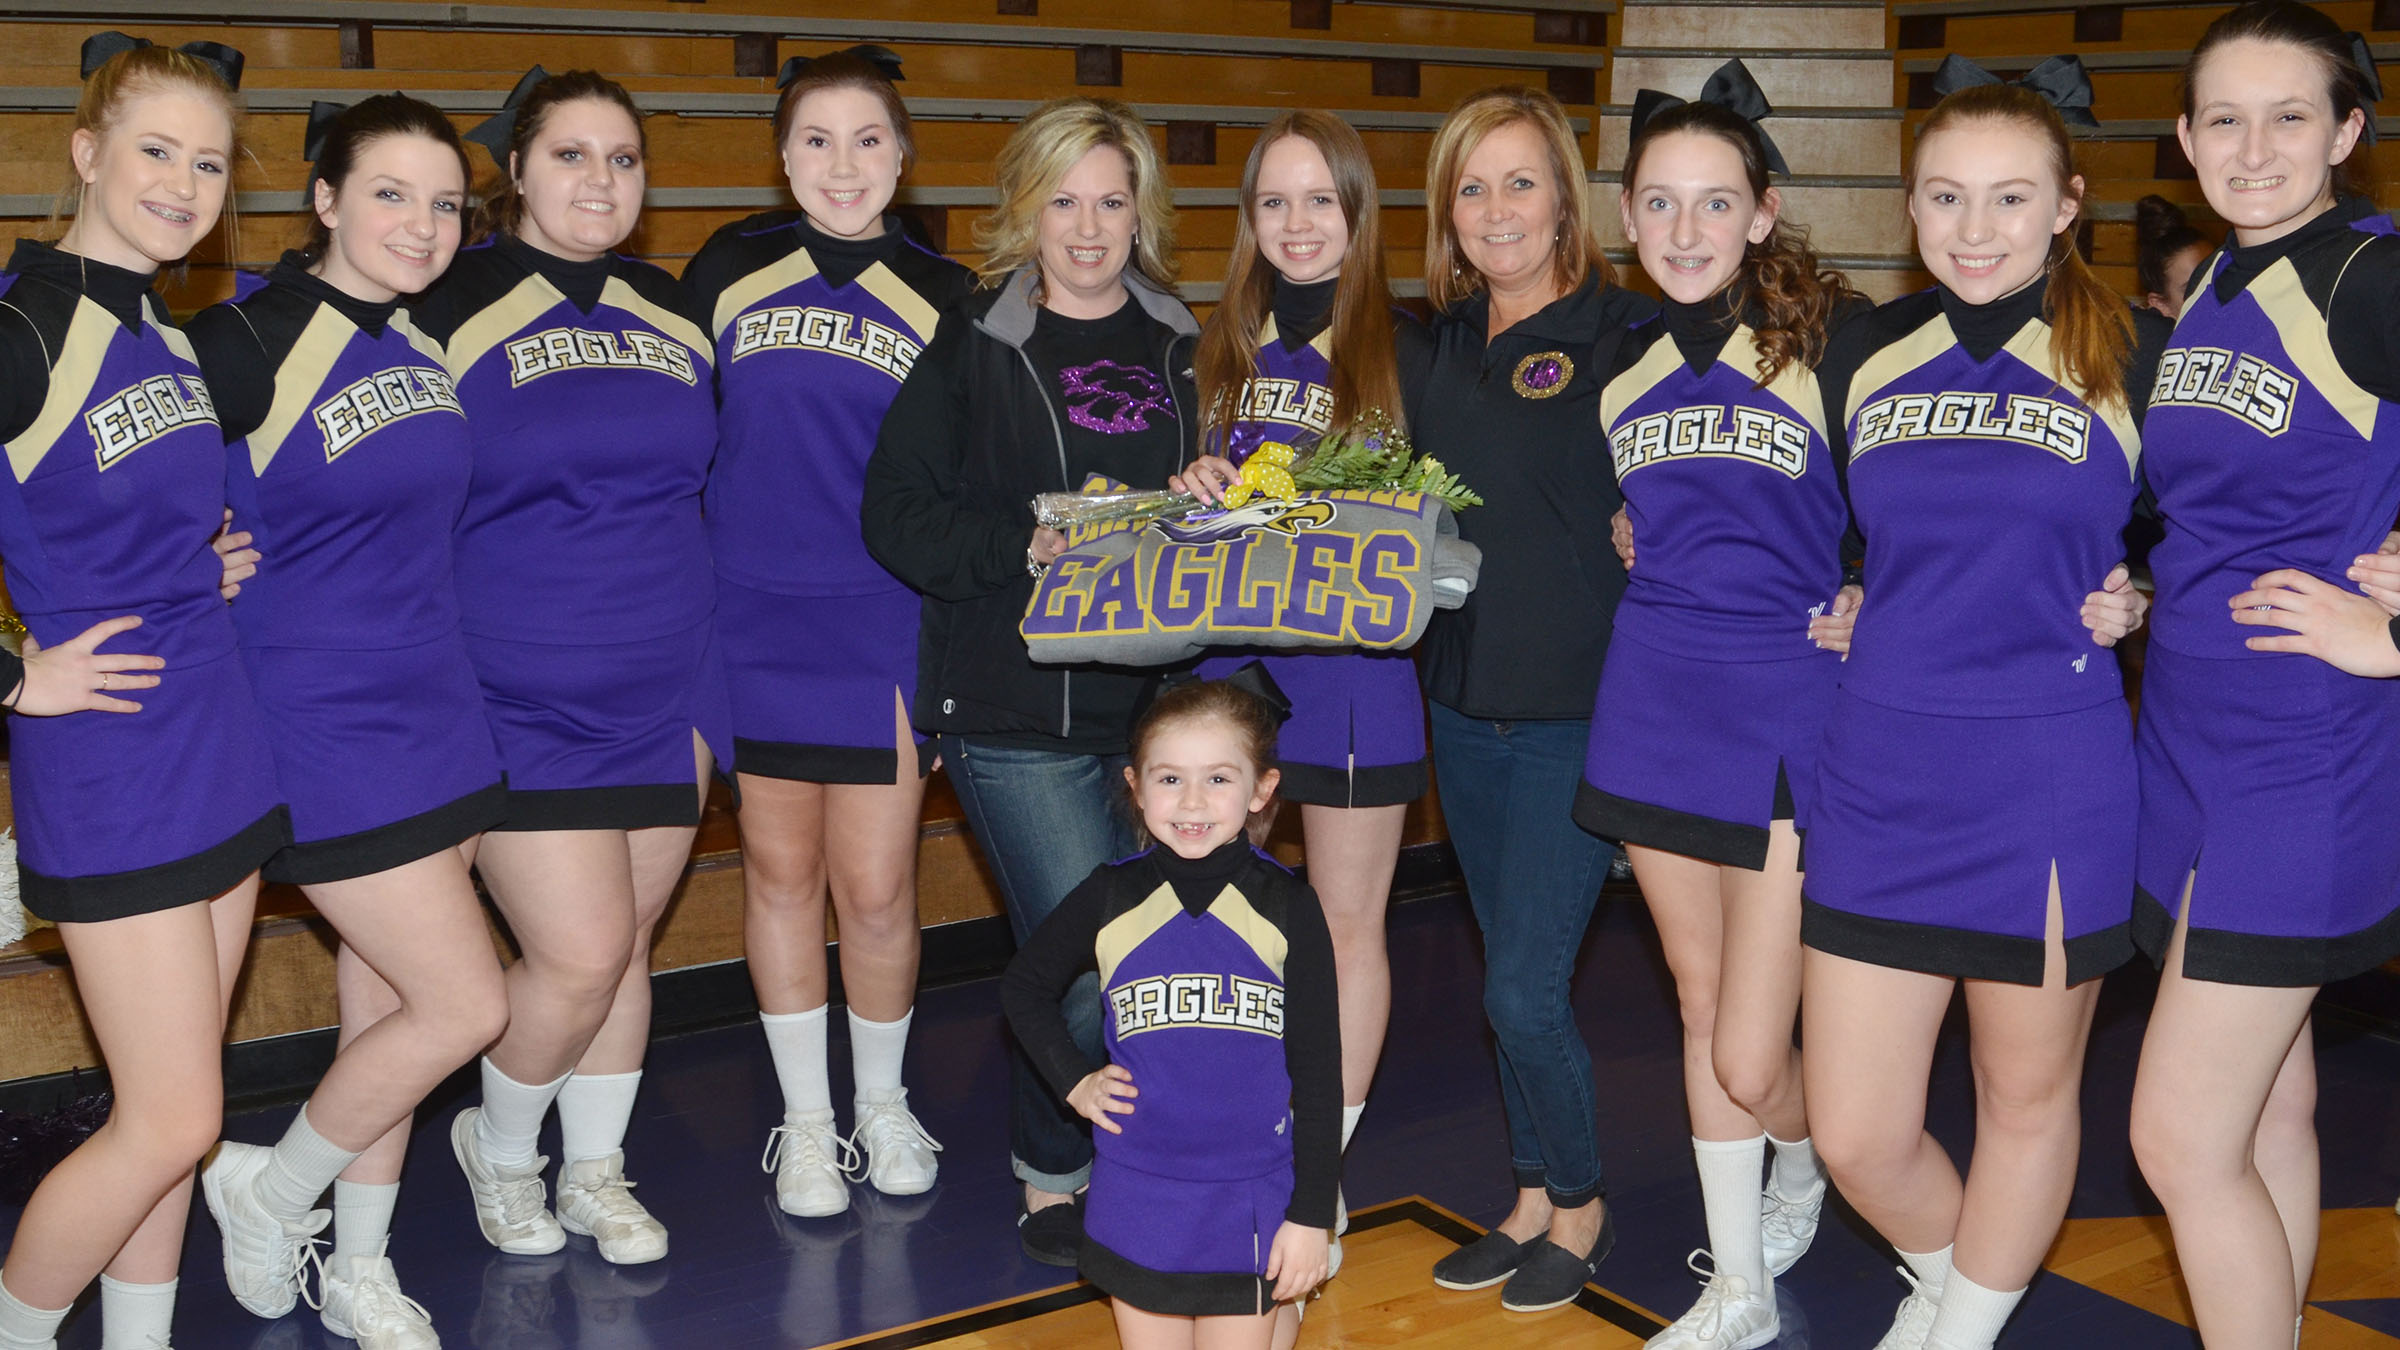 CHS cheerleader Lisa-Marie Richter, a junior and foreign exchange student, is honored. She is pictured with the CHS cheerleading squad. In front is Campbellsville Elementary School first-grader Lainey Price. In back, from left, are freshmen Isabella Osborne and Sydney Wilson, sophomore Andrea Bryant, freshman Lauryn Agathen, coach Nikki Price, Lisa, coach Lisa Wiseman, freshmen Zoe McAninch and Bailey Smith and junior Kimberly Harden.